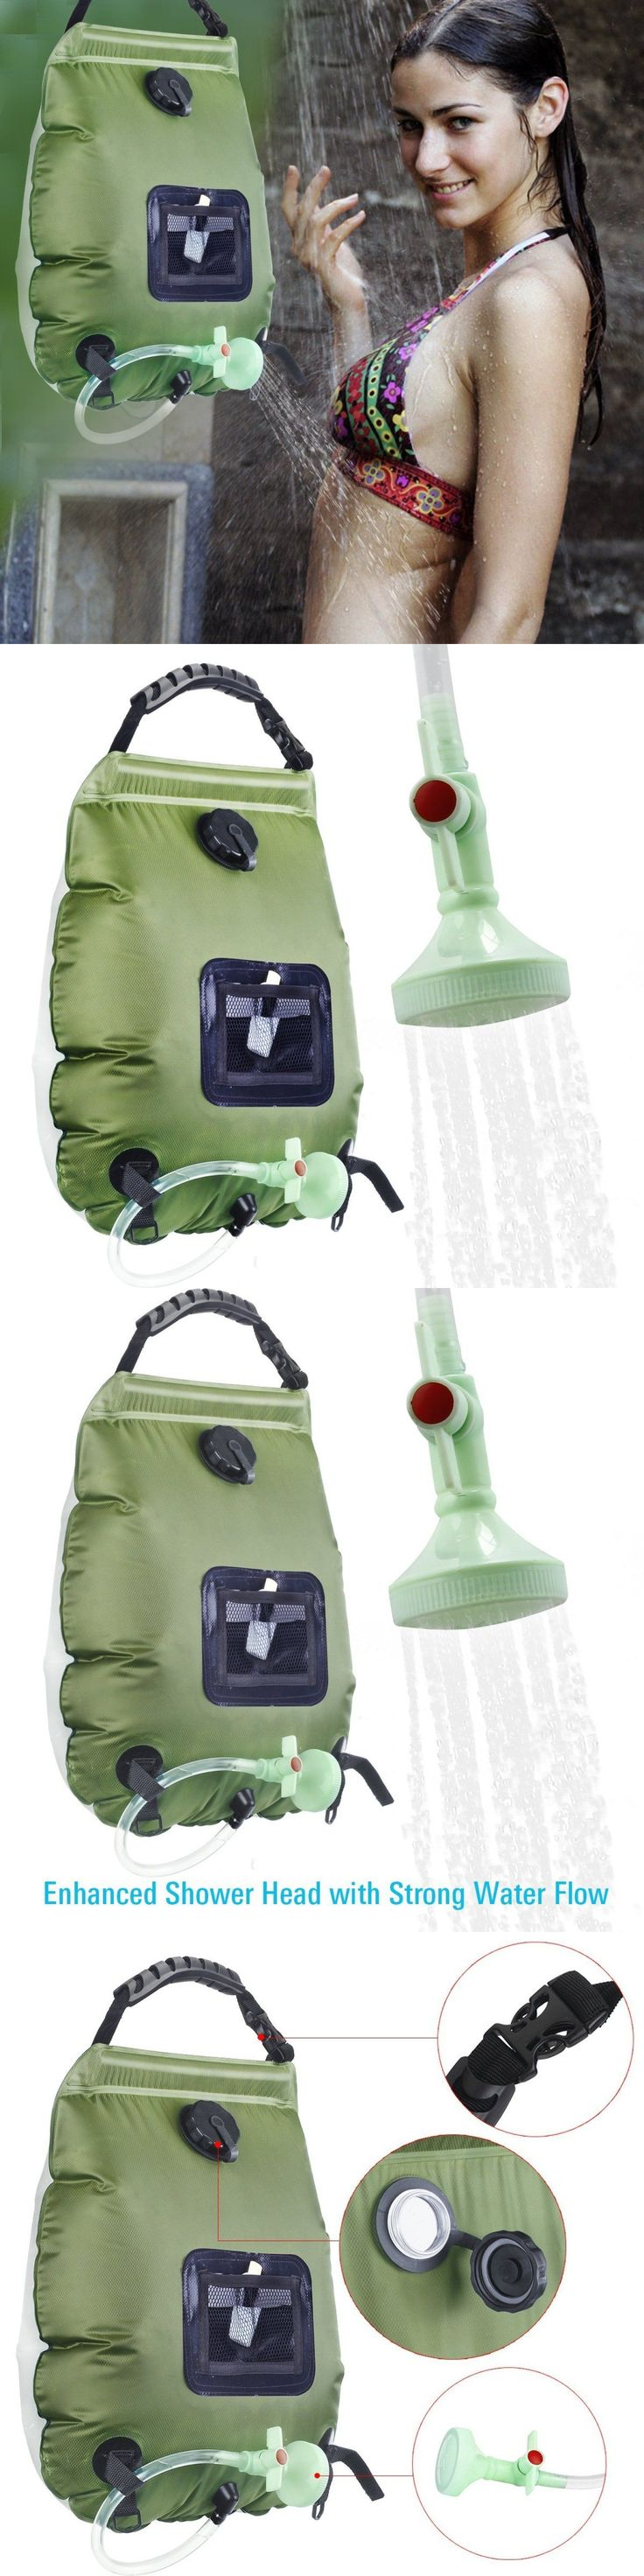 Portable Showers and Accessories 181396: Solar Camping Shower Bag 5-Gallon On-Off Switch Hot Water Heating Shower Head -> BUY IT NOW ONLY: $105.46 on eBay!